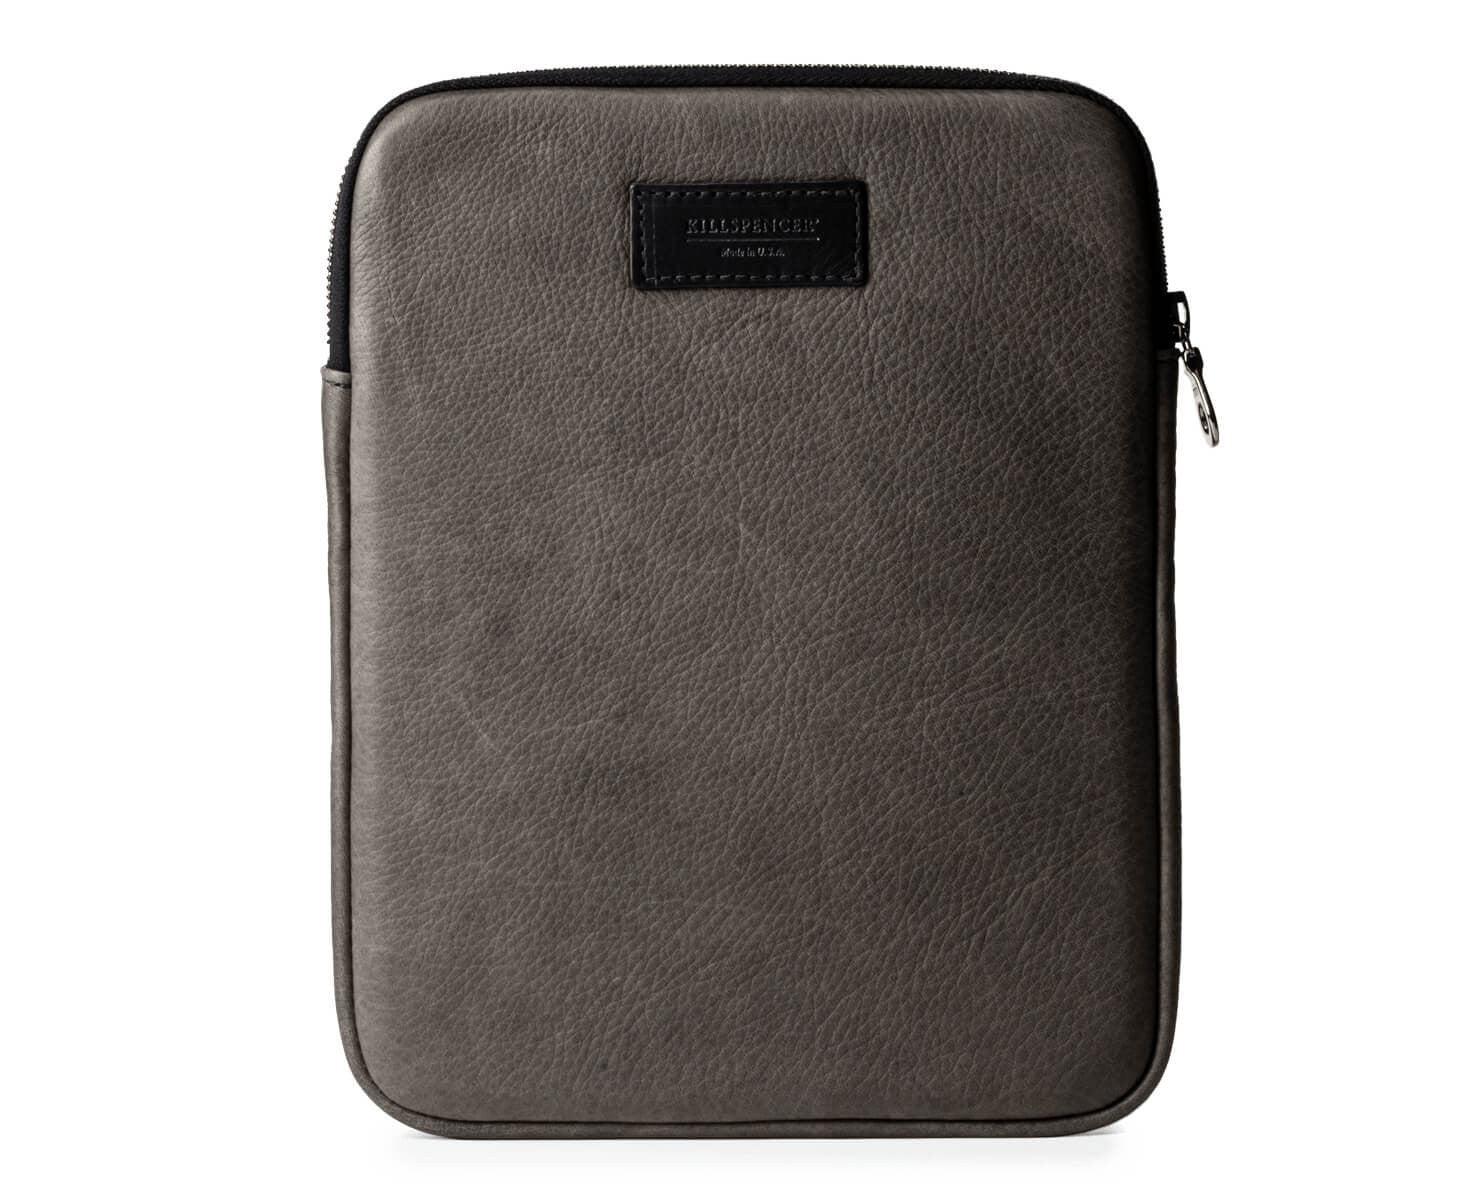 IPAD CASE 2.0 | KILLSPENCER® - Charcoal Grey Leather